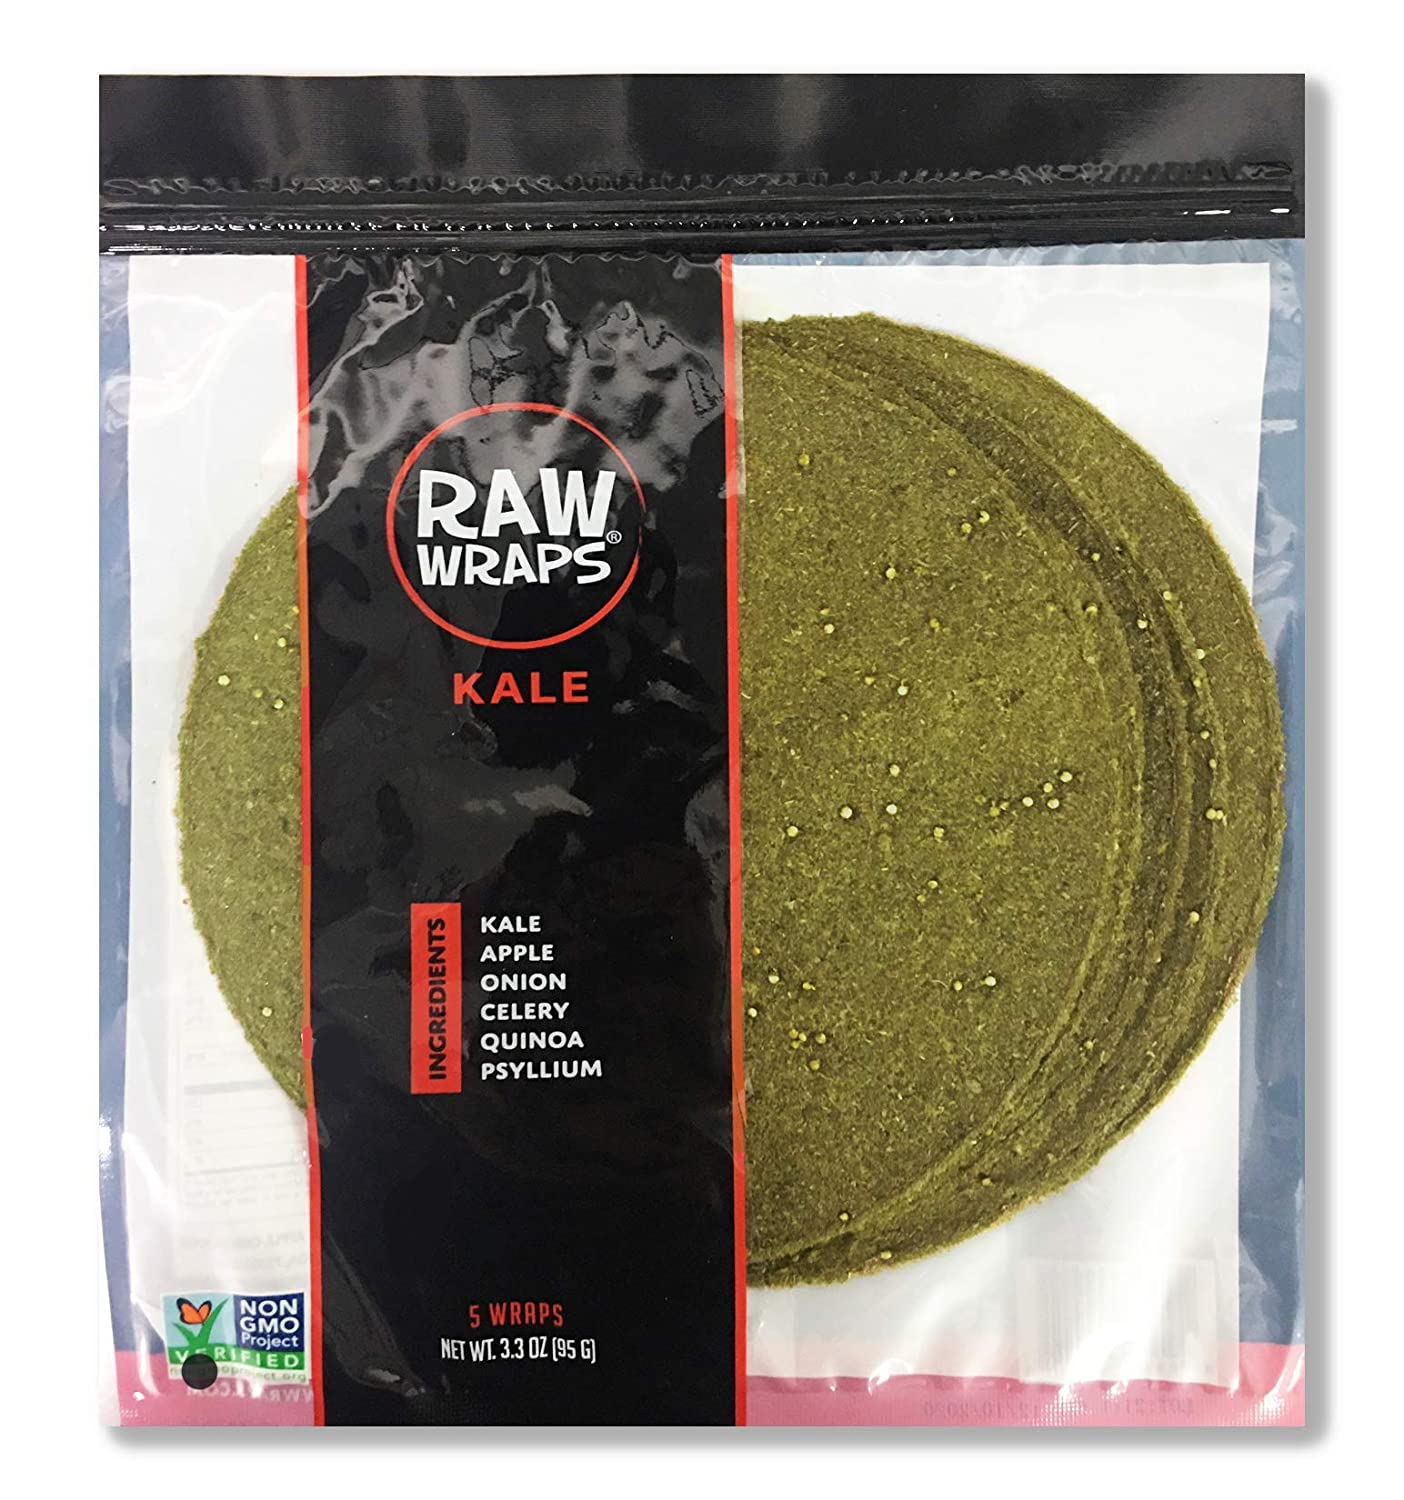 Raw Wraps, Gluten Free, Paleo, and Keto Friendly, Vegan, Non-GMO, Whole Food, Low Carb Tortilla Wraps, 5 Wraps per Bag, Kale Flavor